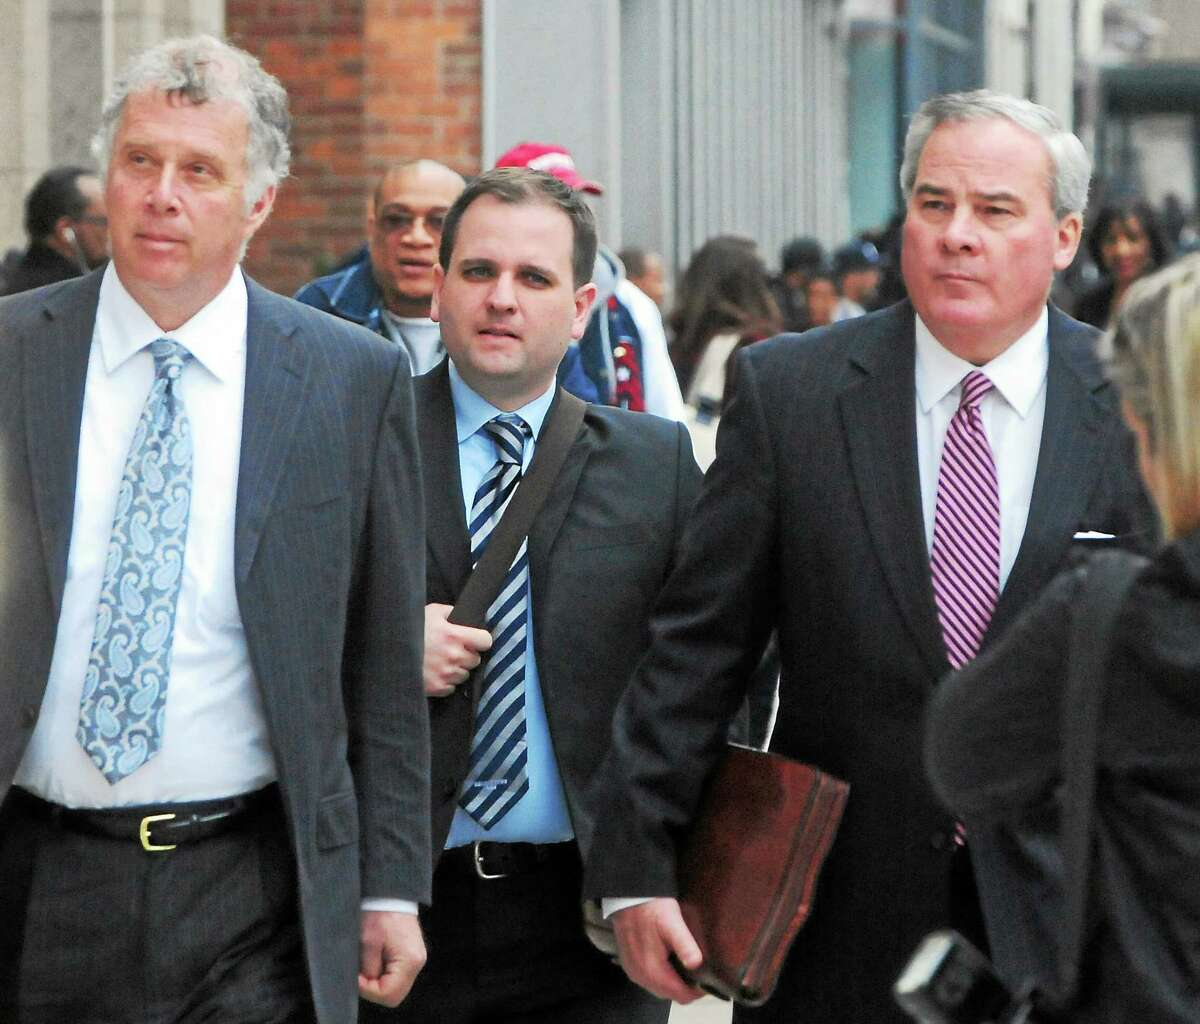 Former Connecticut Gov. John G. Rowland, right, arrives with his attorney Reid Weingarten, far left, at the federal courthouse in New Haven in April to face a seven-count indictment a campaign fraud investigation in Connecticut's 5th Congressional District.